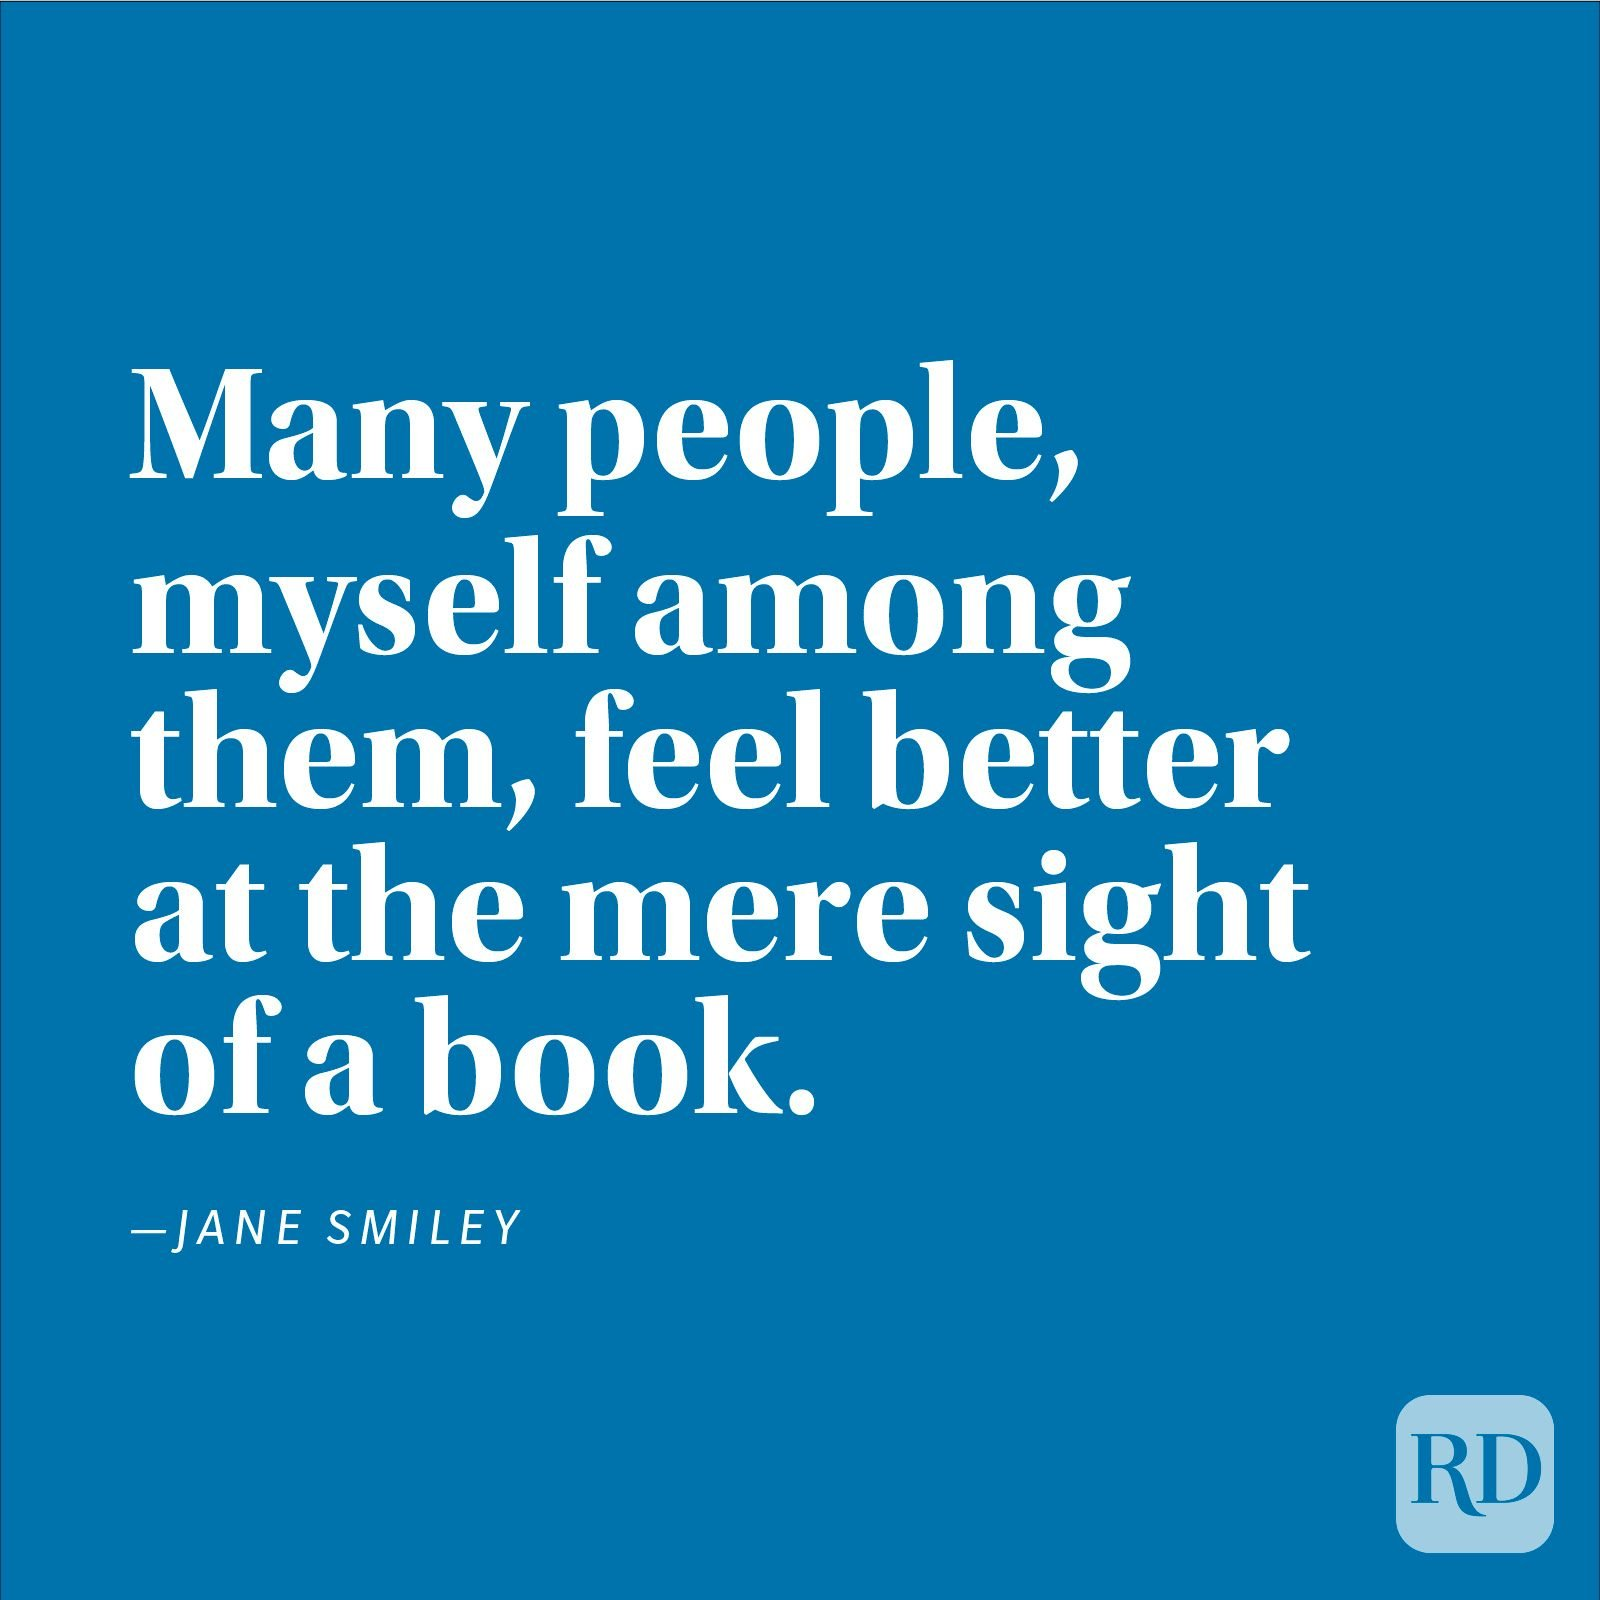 """Many people, myself among them, feel better at the mere sight of a book."" —Jane Smiley"